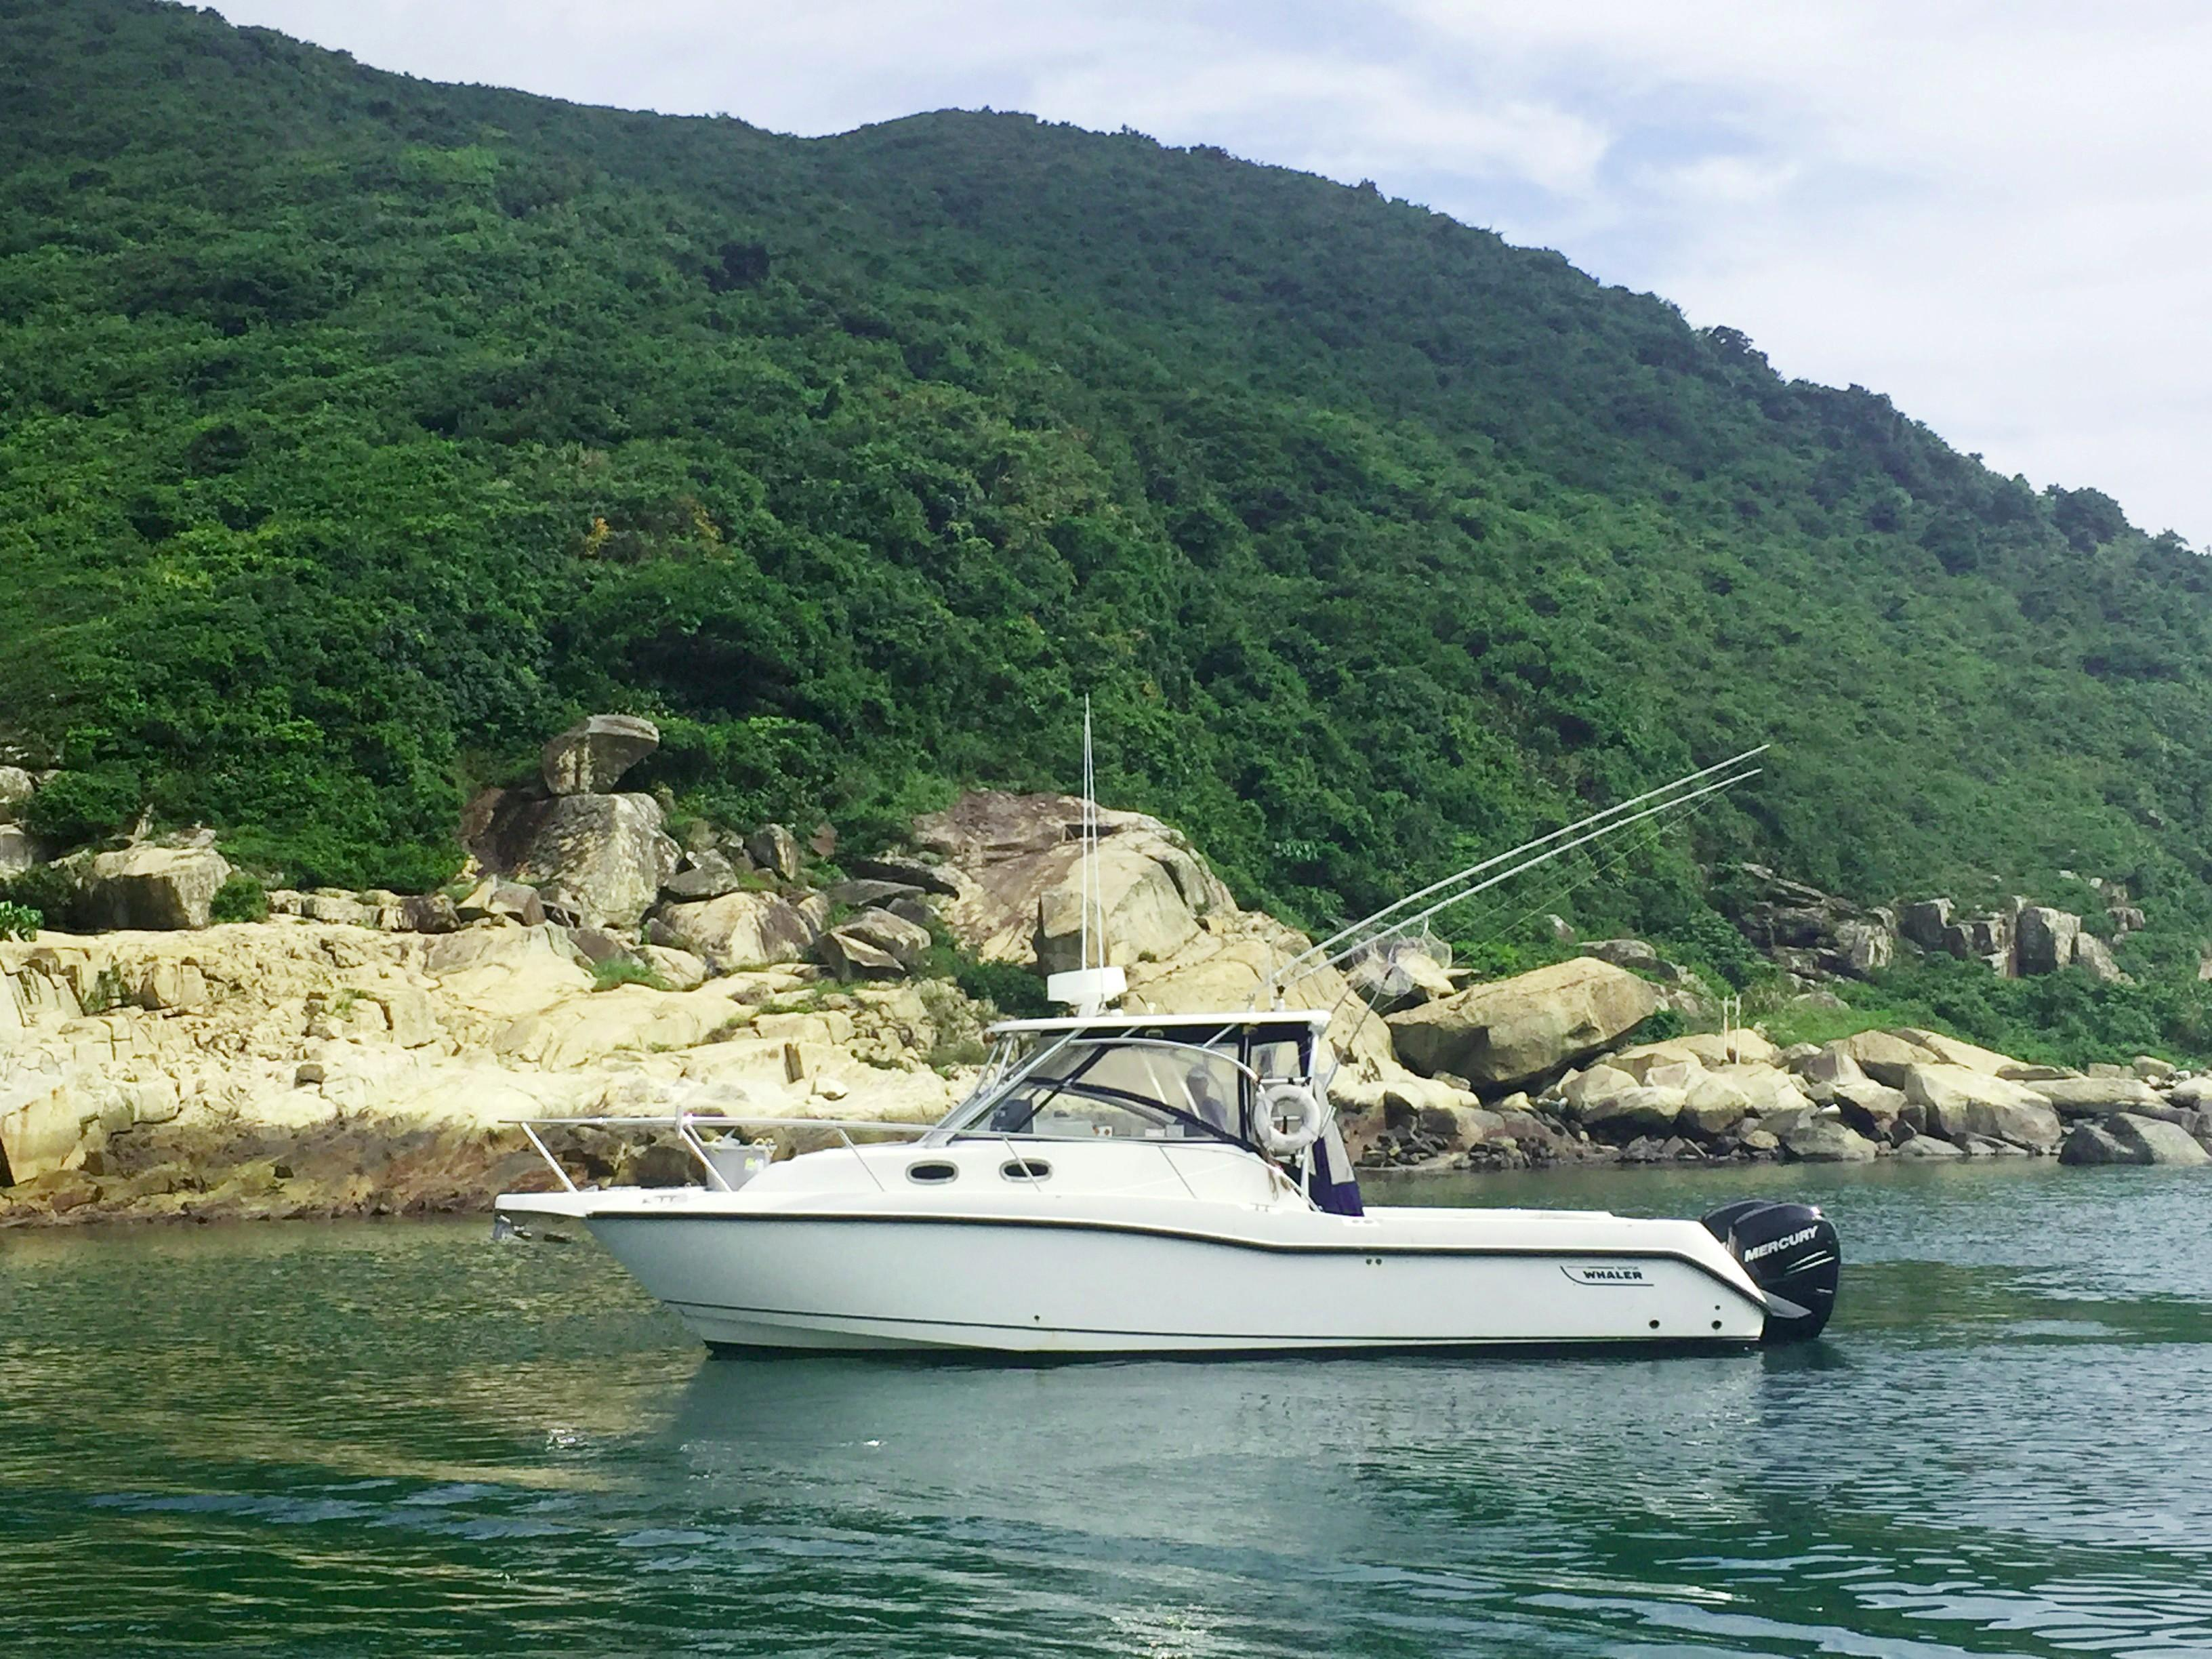 Boston Whaler 305 Conquest Motor Yacht - Simpson Marine